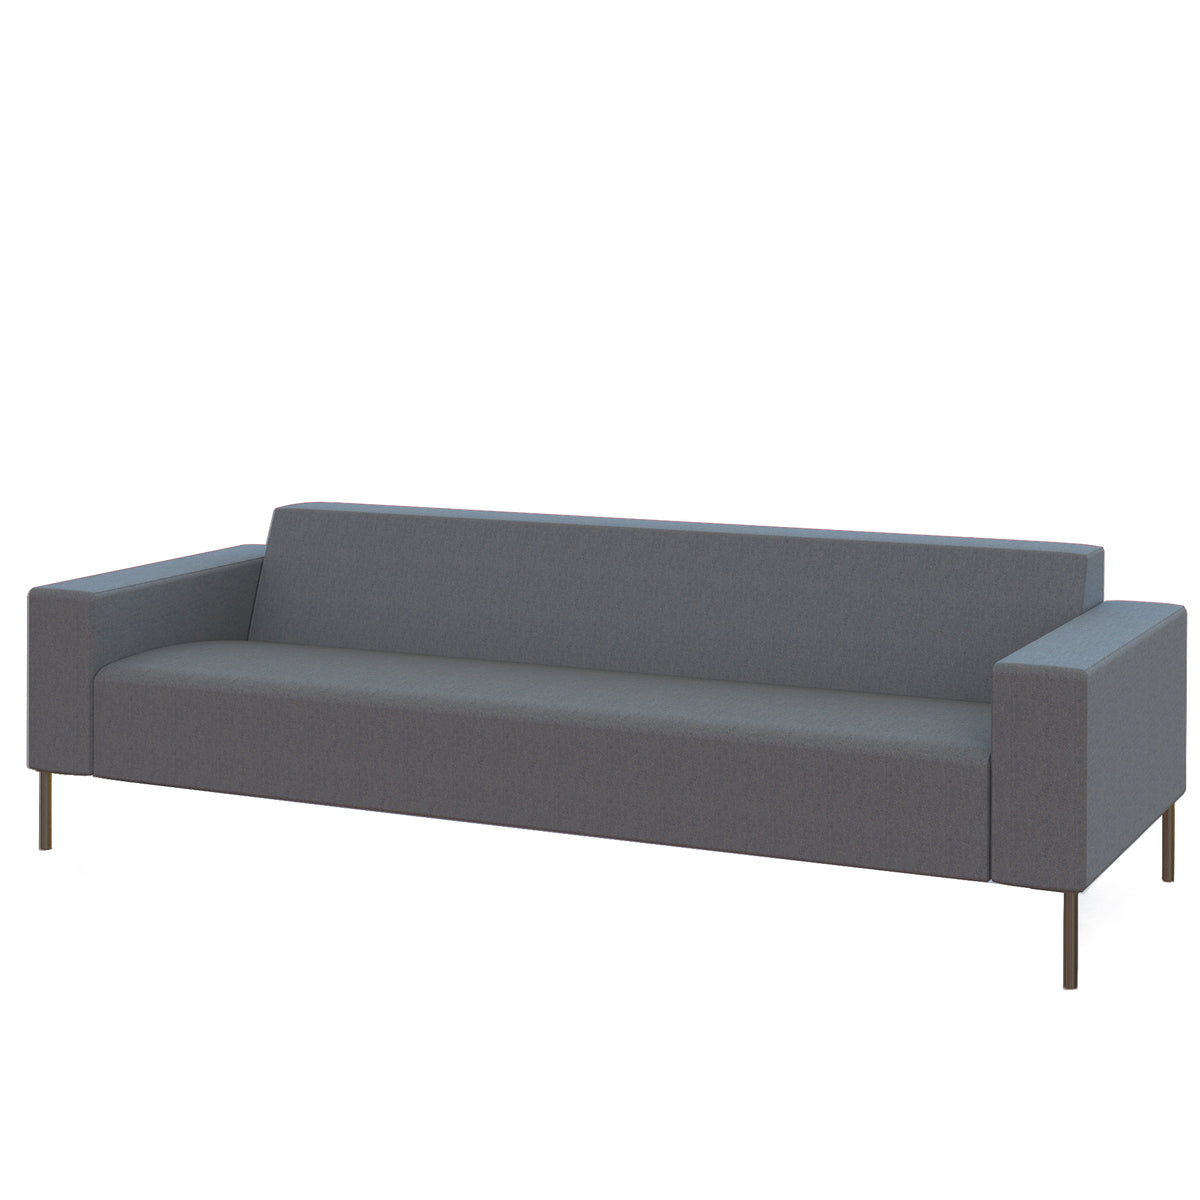 Hitch Mylius HM18 Origin Three Seat Sofa Brushed Stainless Steel Legs Westminster